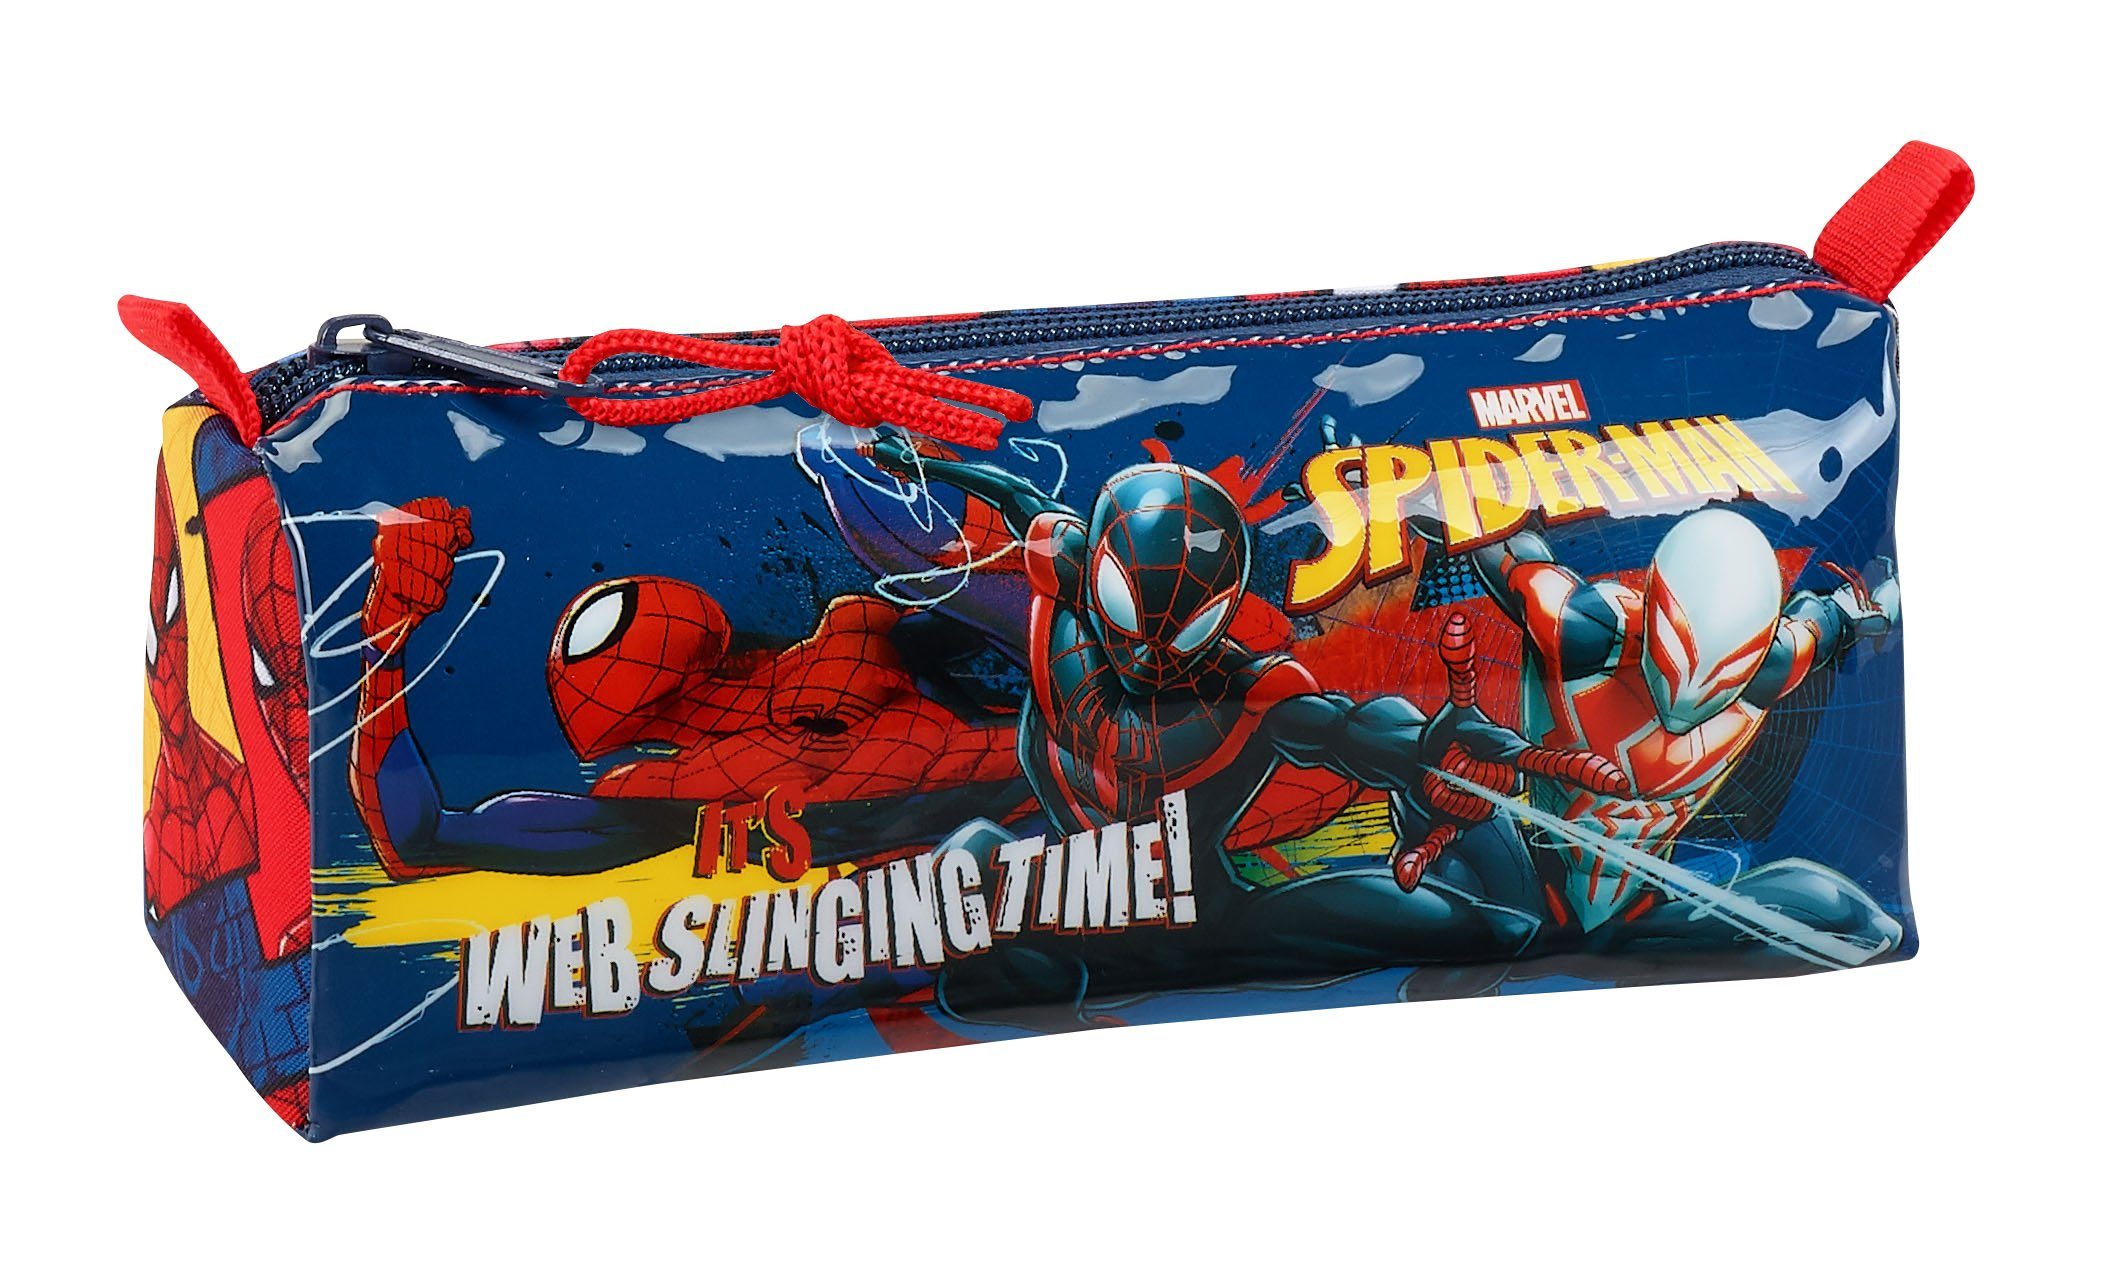 Safta Estuche Escolar Spiderman «Slinging Time» Oficial 210x70x80mm